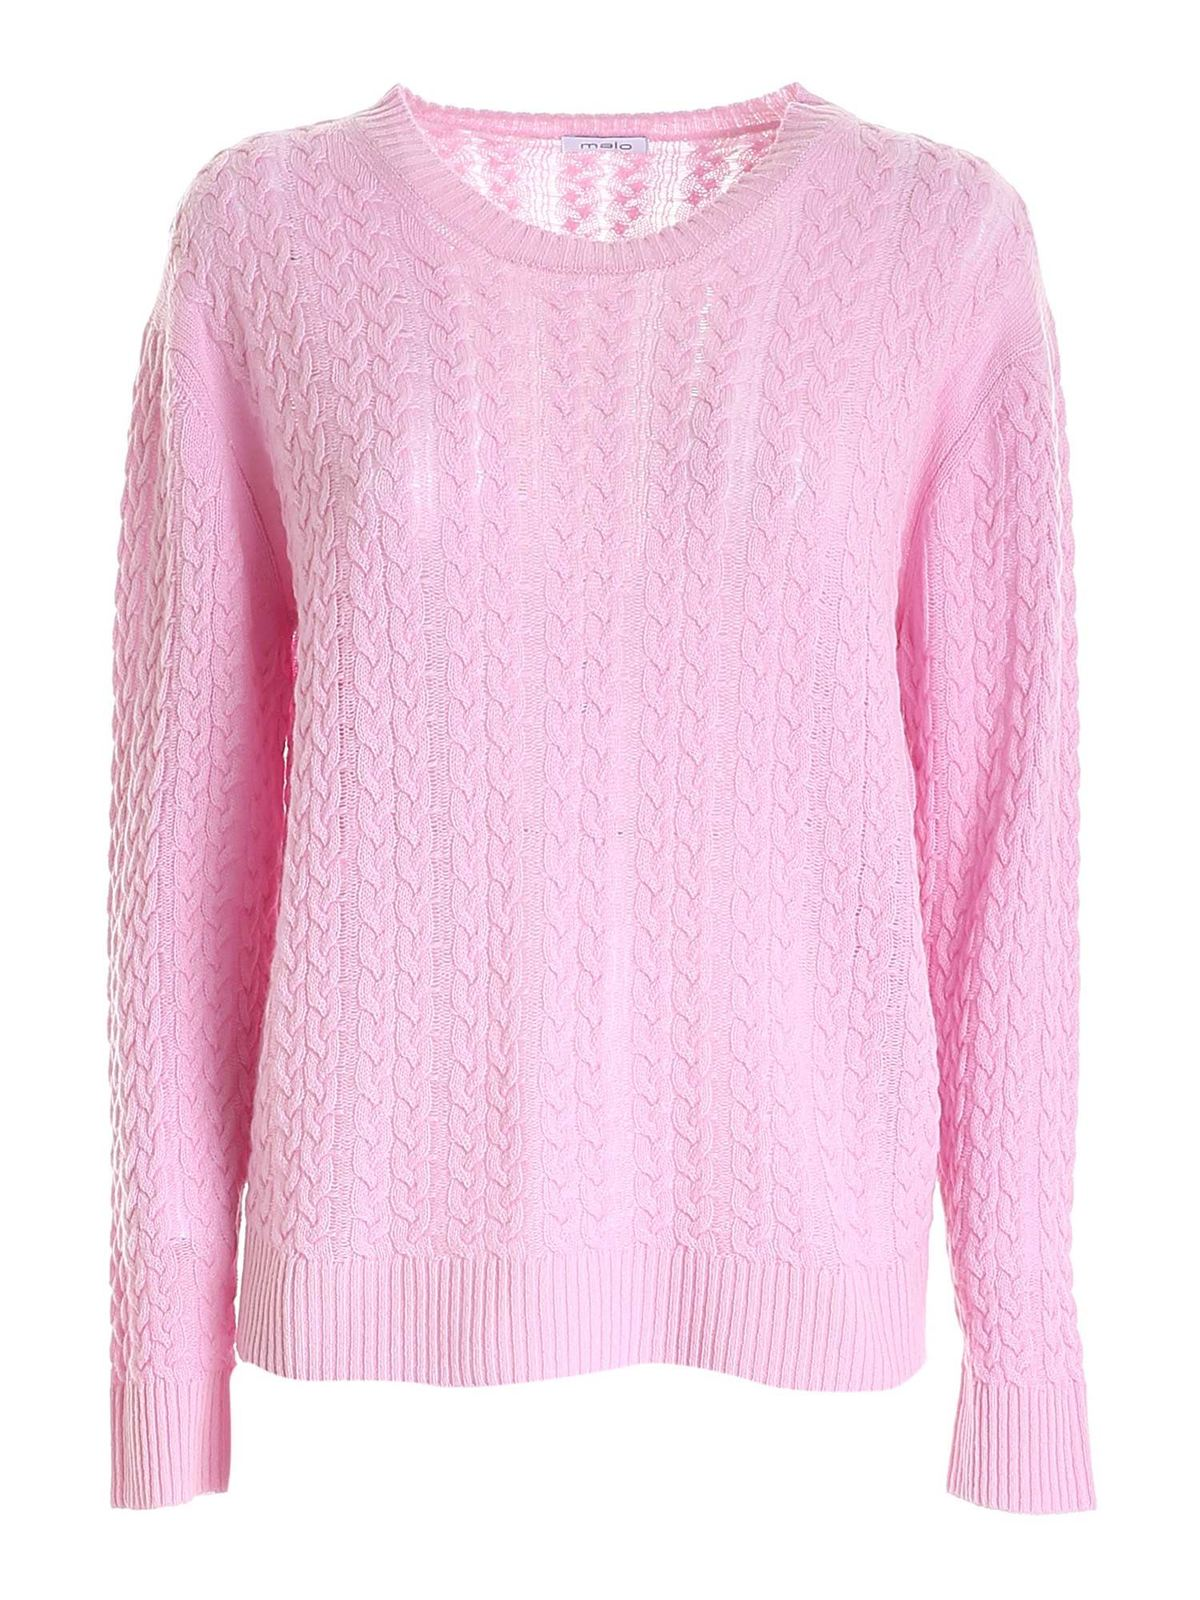 Malo Cashmeres CABLE KNIT CASHMERE SWEATER IN PINK